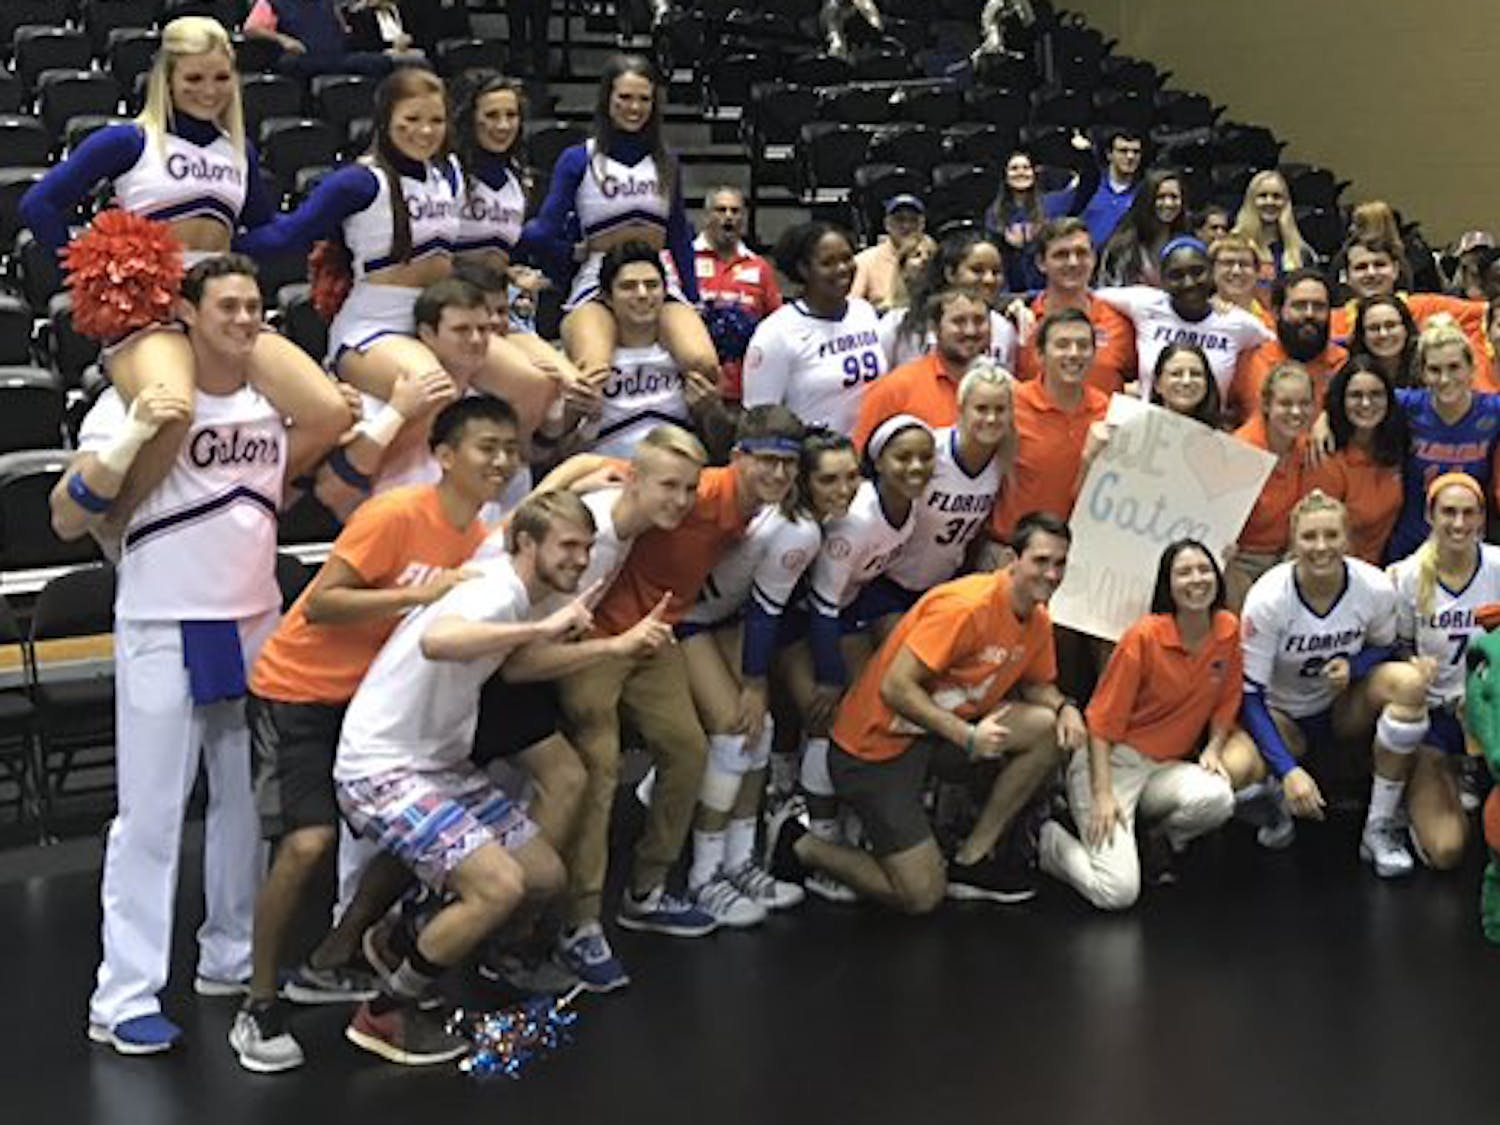 The UF volleyball team celebrates its sweep of FGCU (25-17, 25-13, 25-17) in the second round of the NCAA Tournament with some fans and the Florida band.